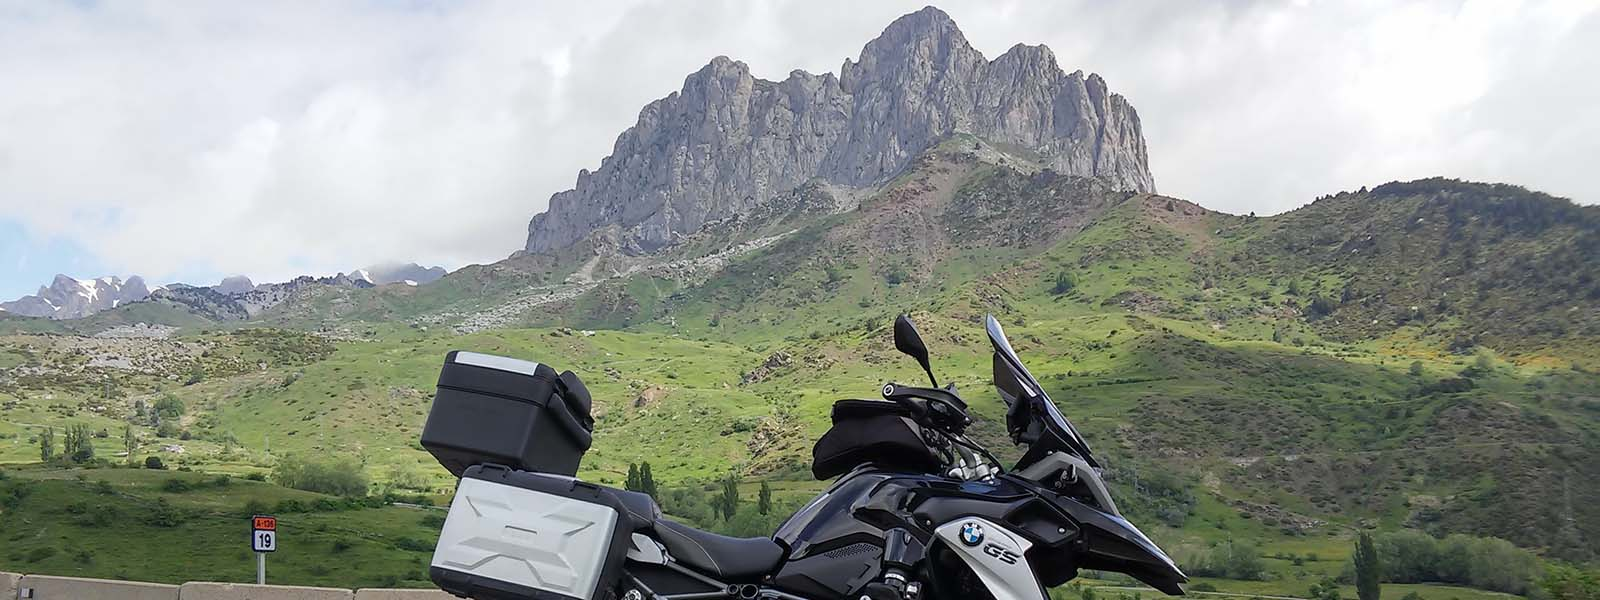 France & Spain Motorcycle Tour – Andorra & Pyrenees